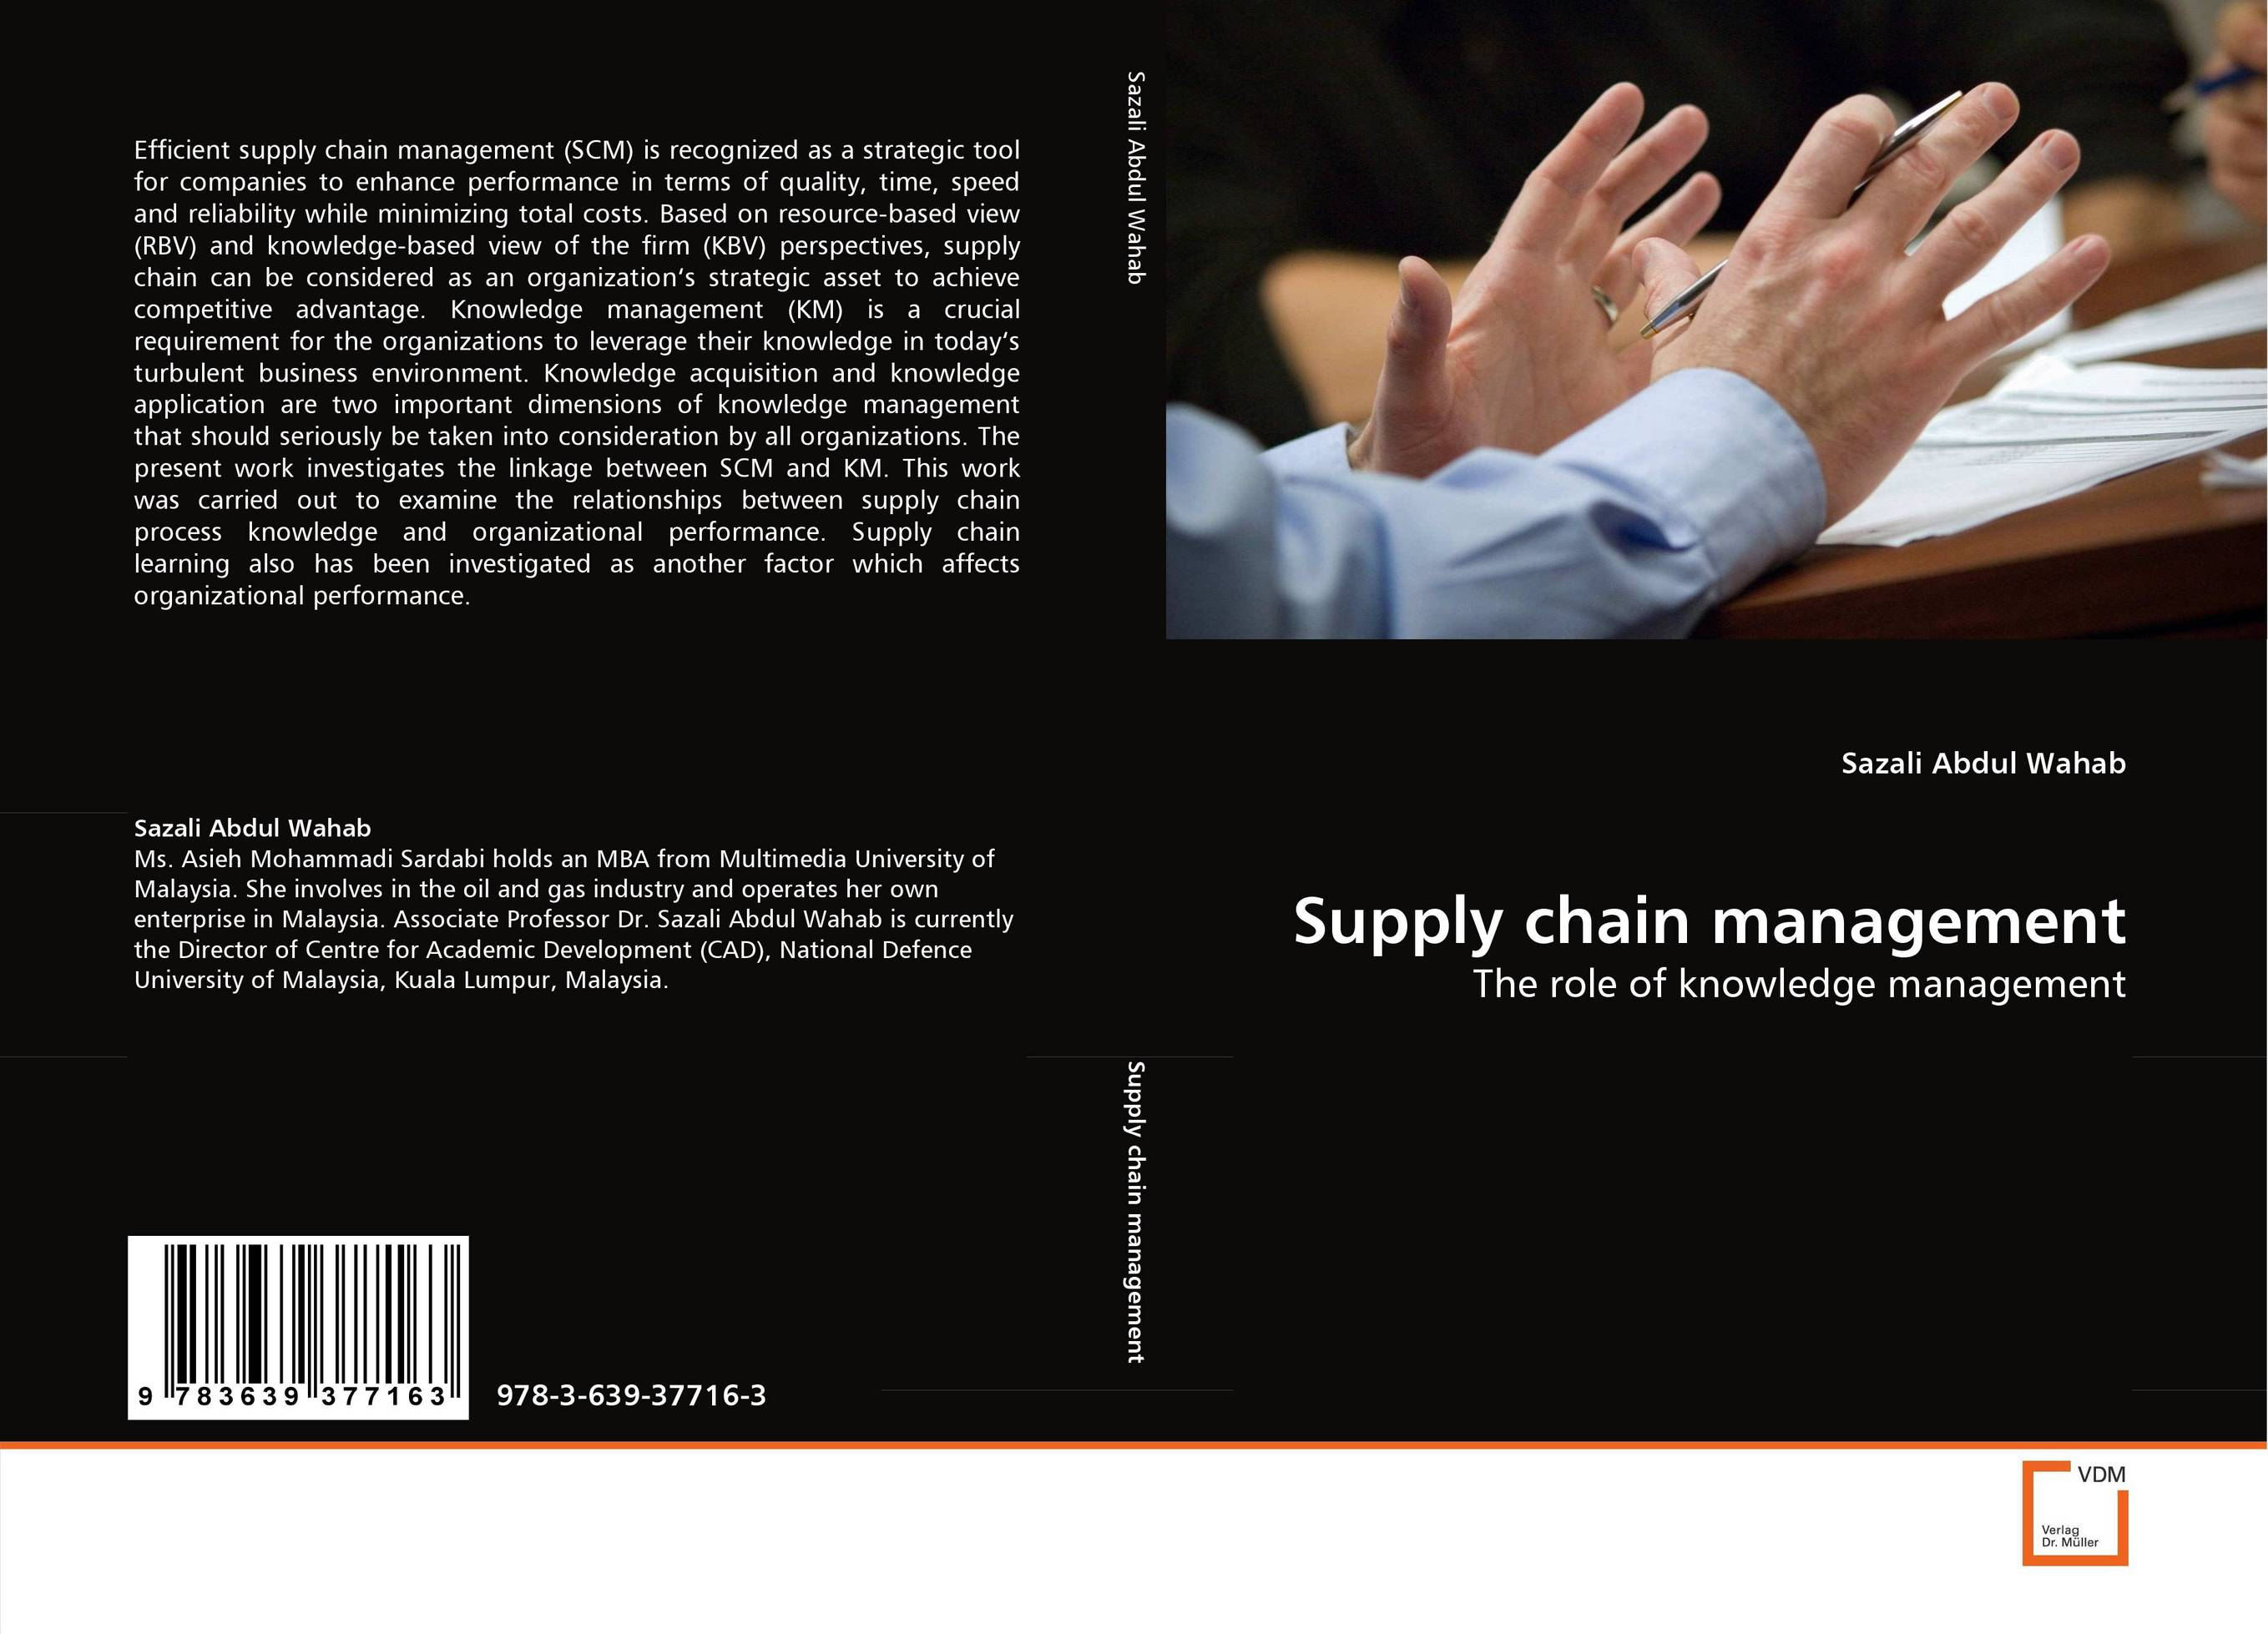 Supply chain management robert davis a demand driven inventory optimization and replenishment creating a more efficient supply chain